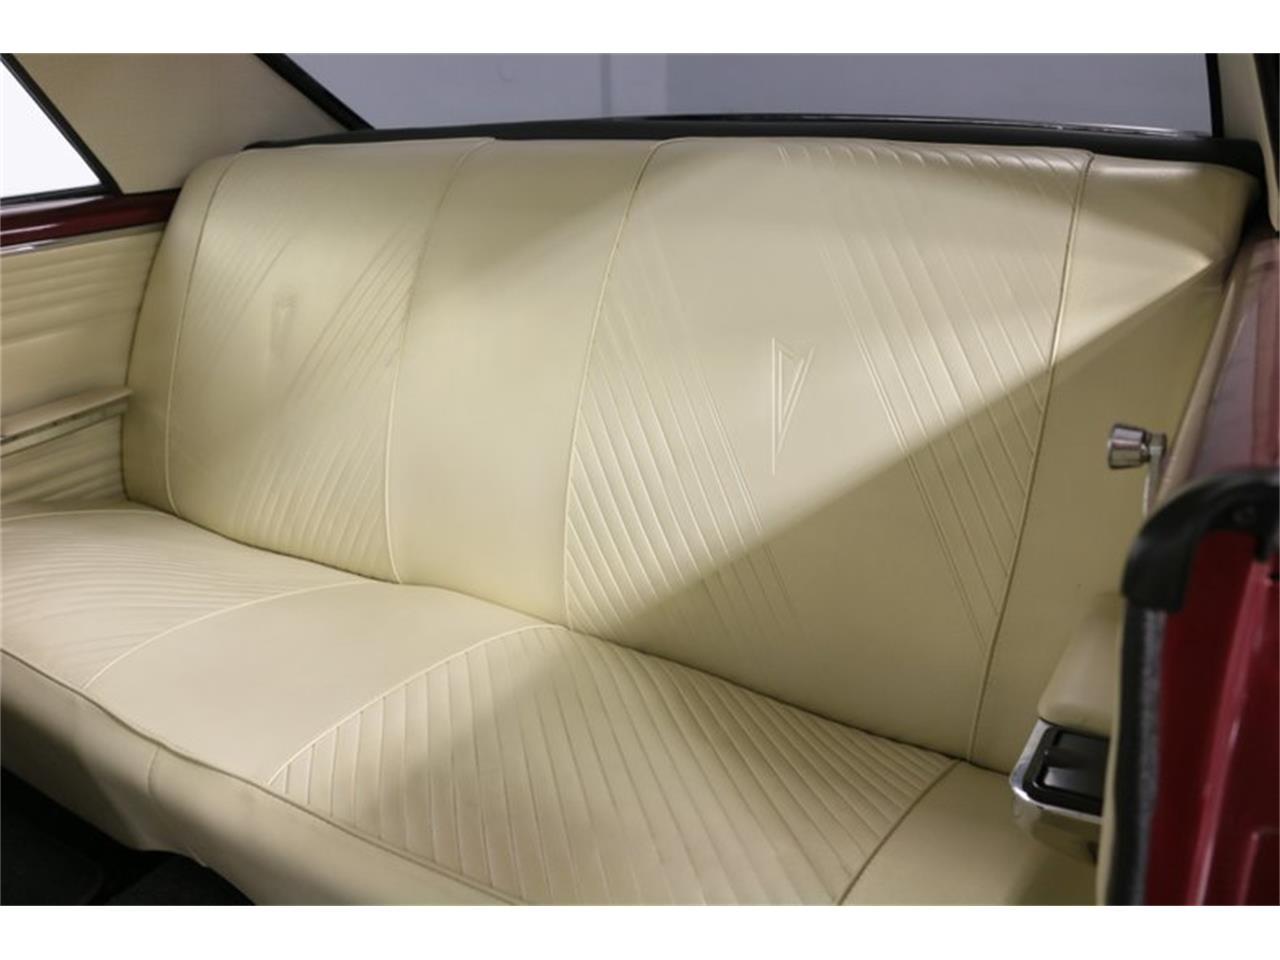 Large Picture of 1965 Pontiac LeMans - $37,995.00 Offered by Streetside Classics - Dallas / Fort Worth - Q507